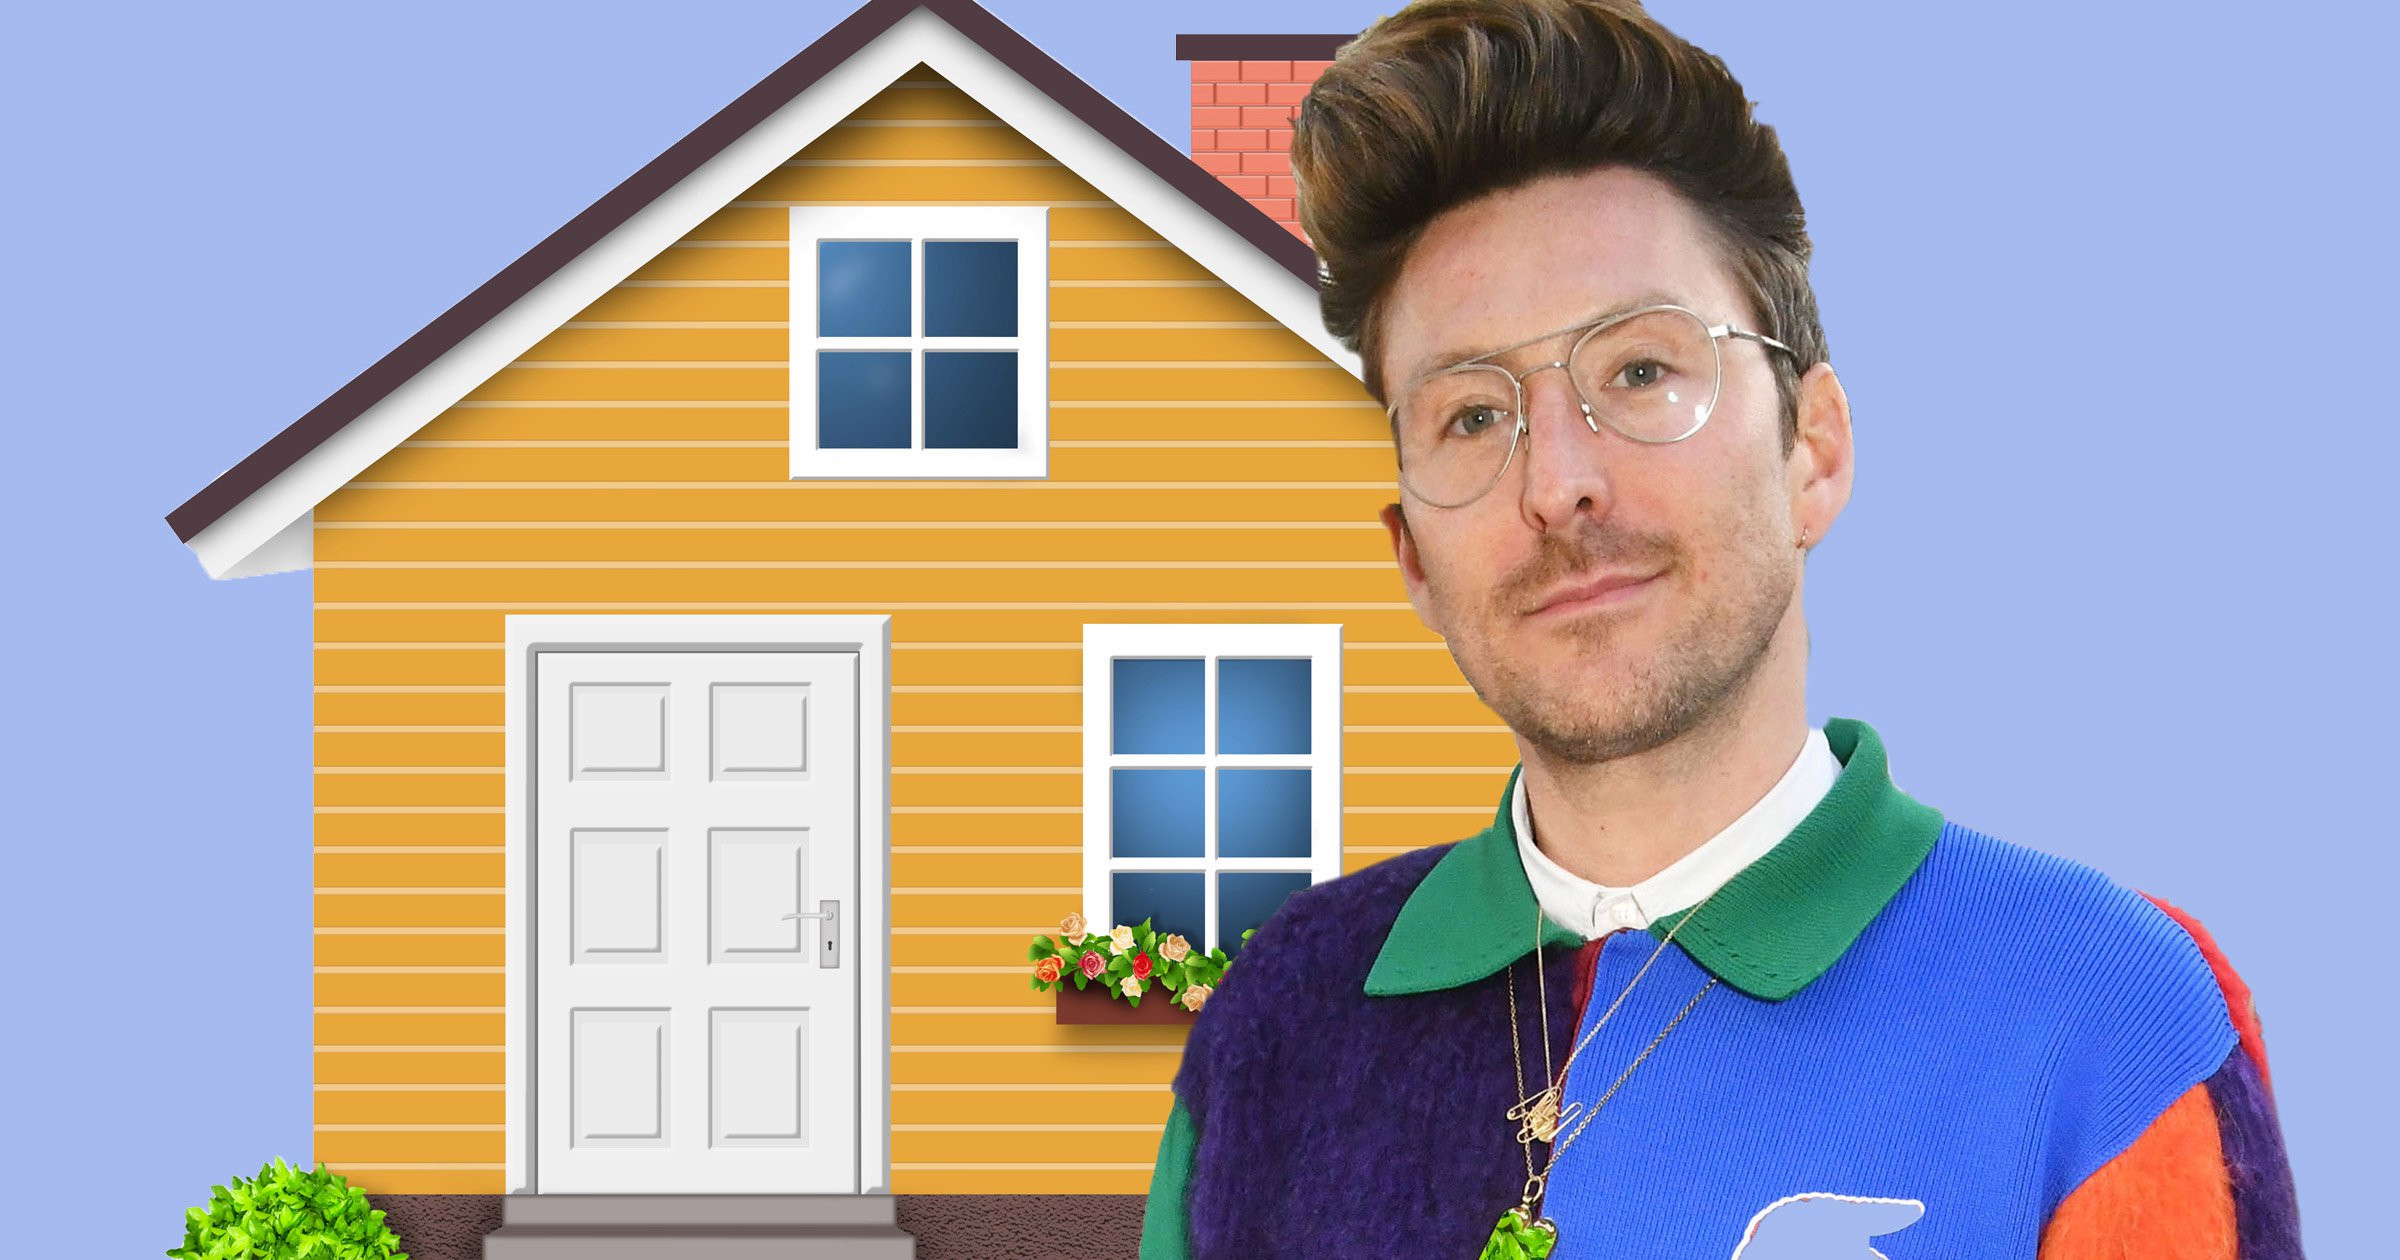 Fashion designer Henry Holland shares his pride in progressing to 'grown up' five-bed home in Hackney